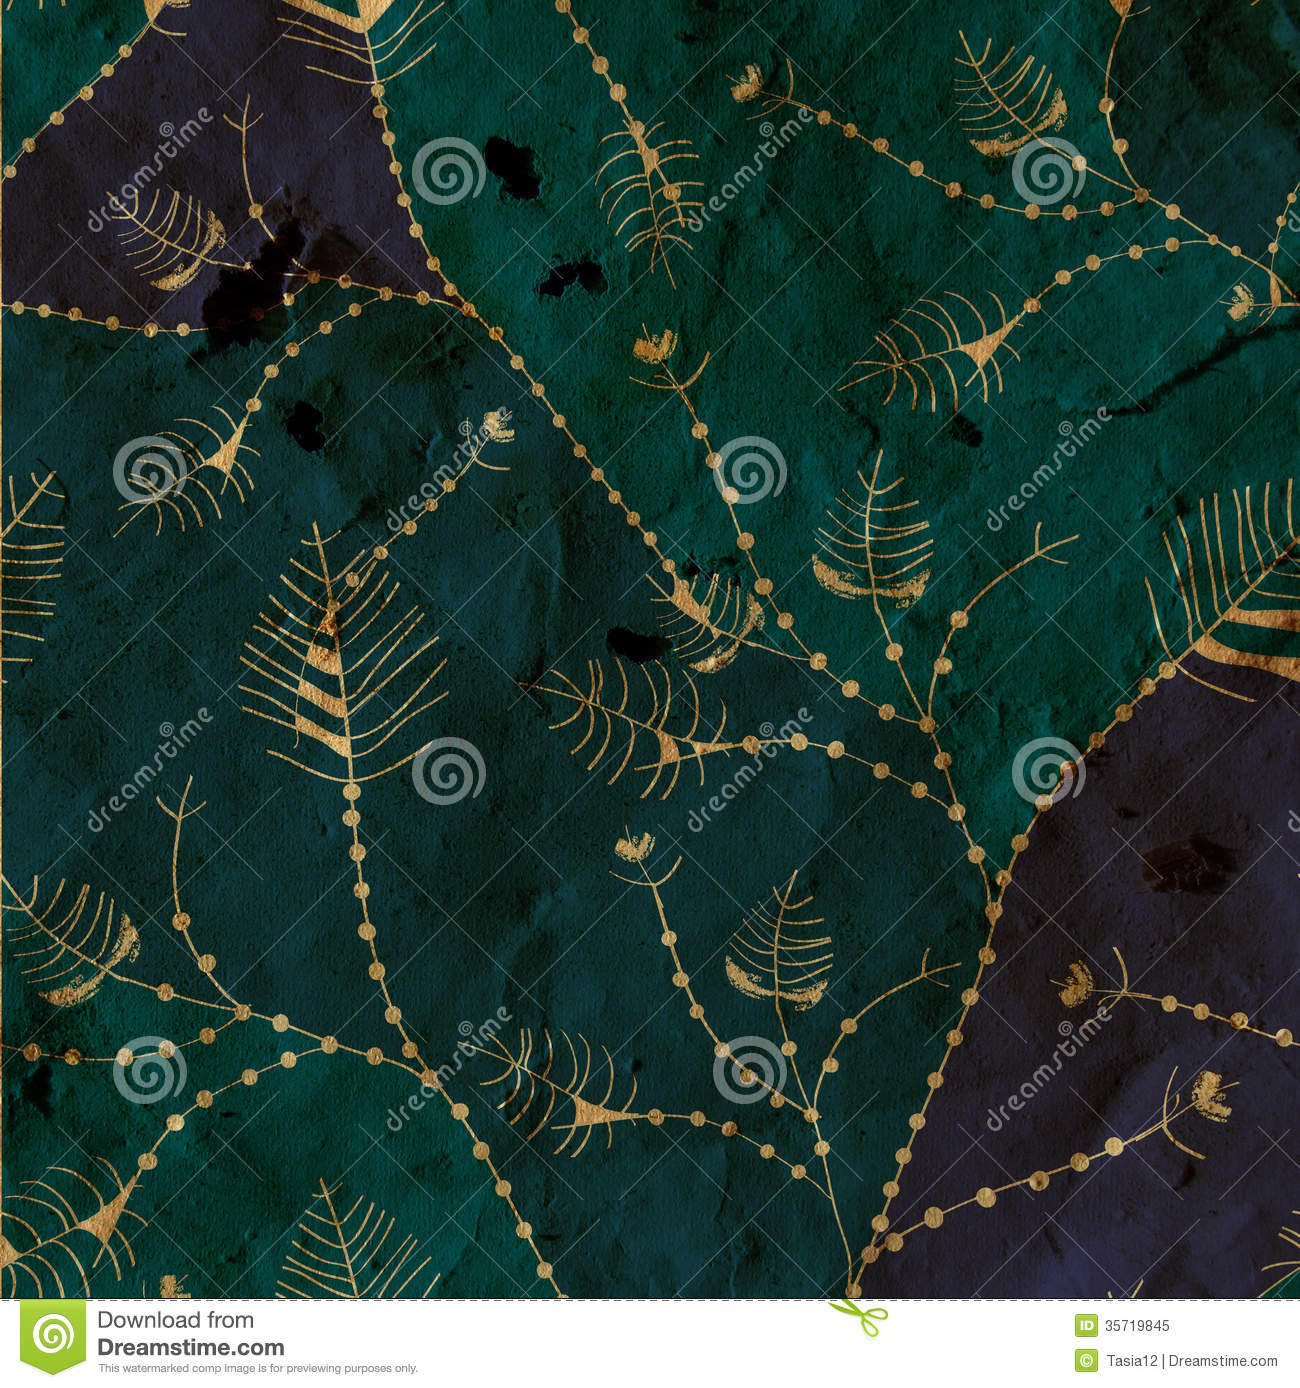 Fall Leaf Pattern Wallpaper Leaves Whimsical Background Paper Texture Royalty Free